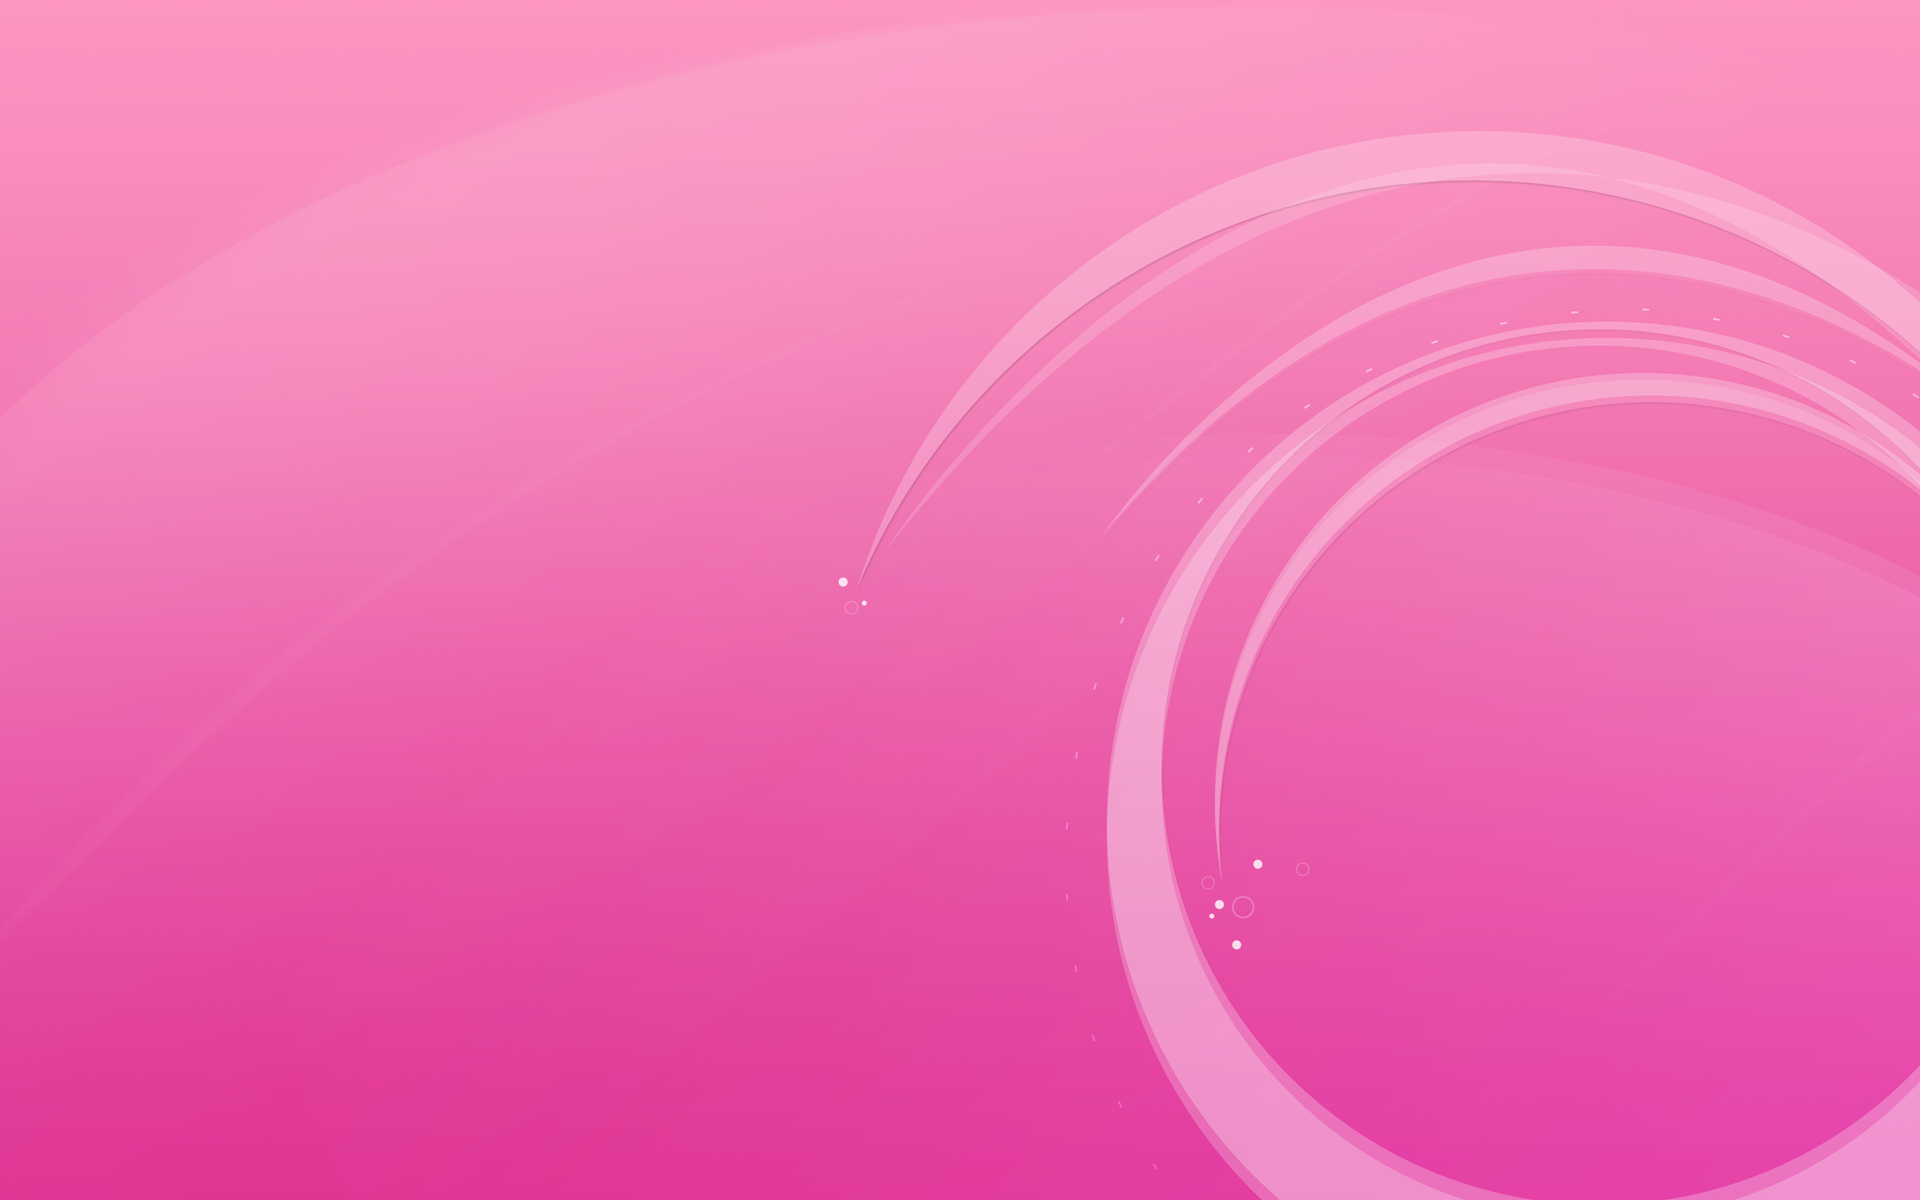 Pink Abstract image